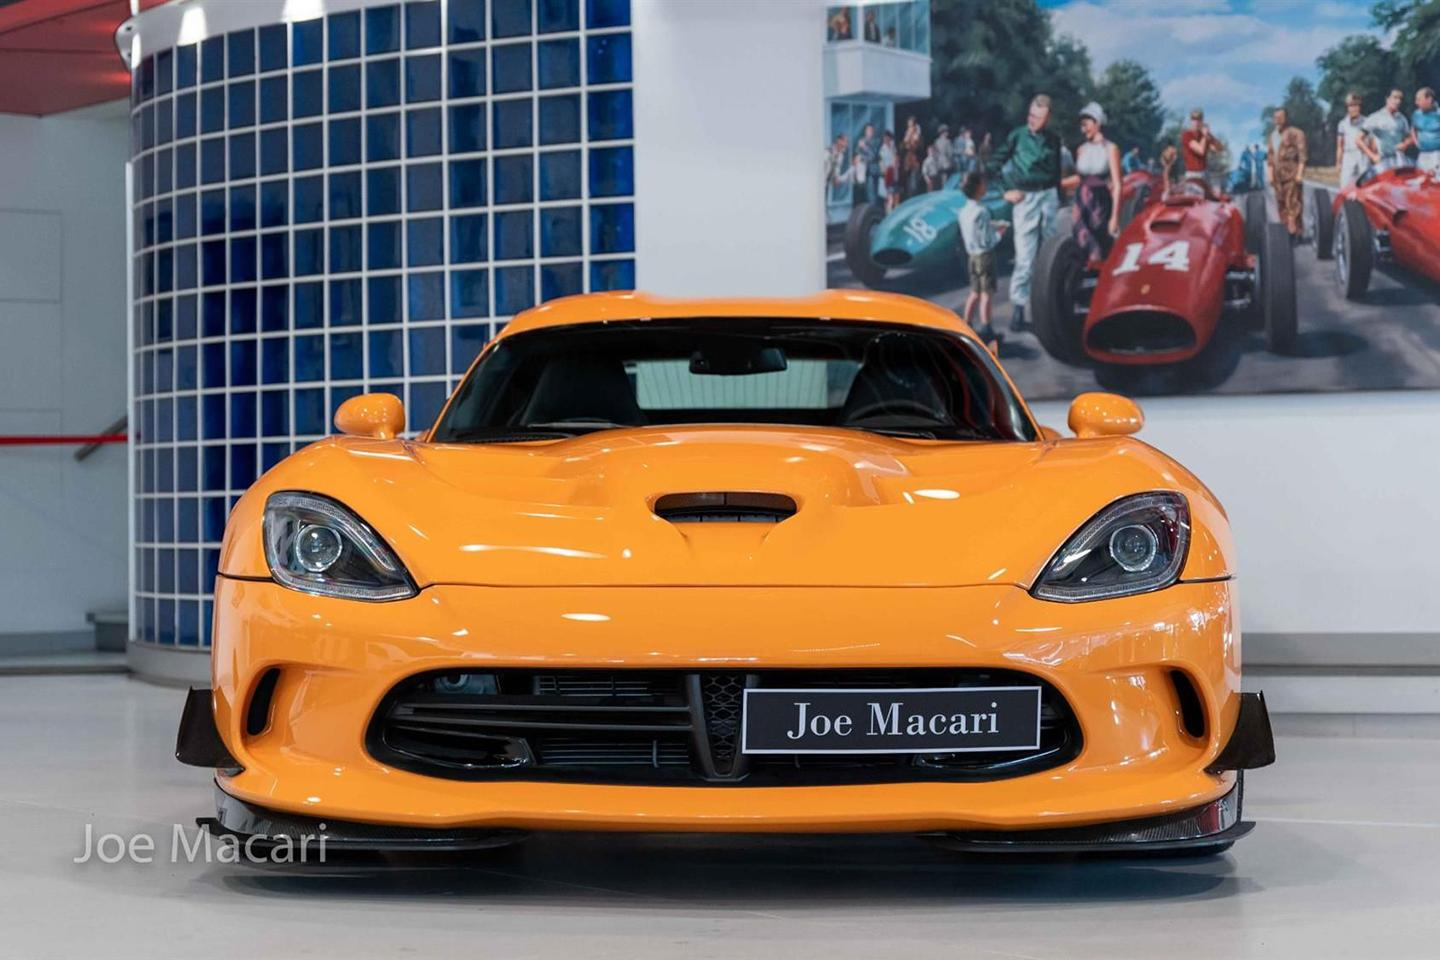 Re Dodge Viper Time Attack For Sale Page 1 General Gassing Pistonheads Uk [ 960 x 1440 Pixel ]